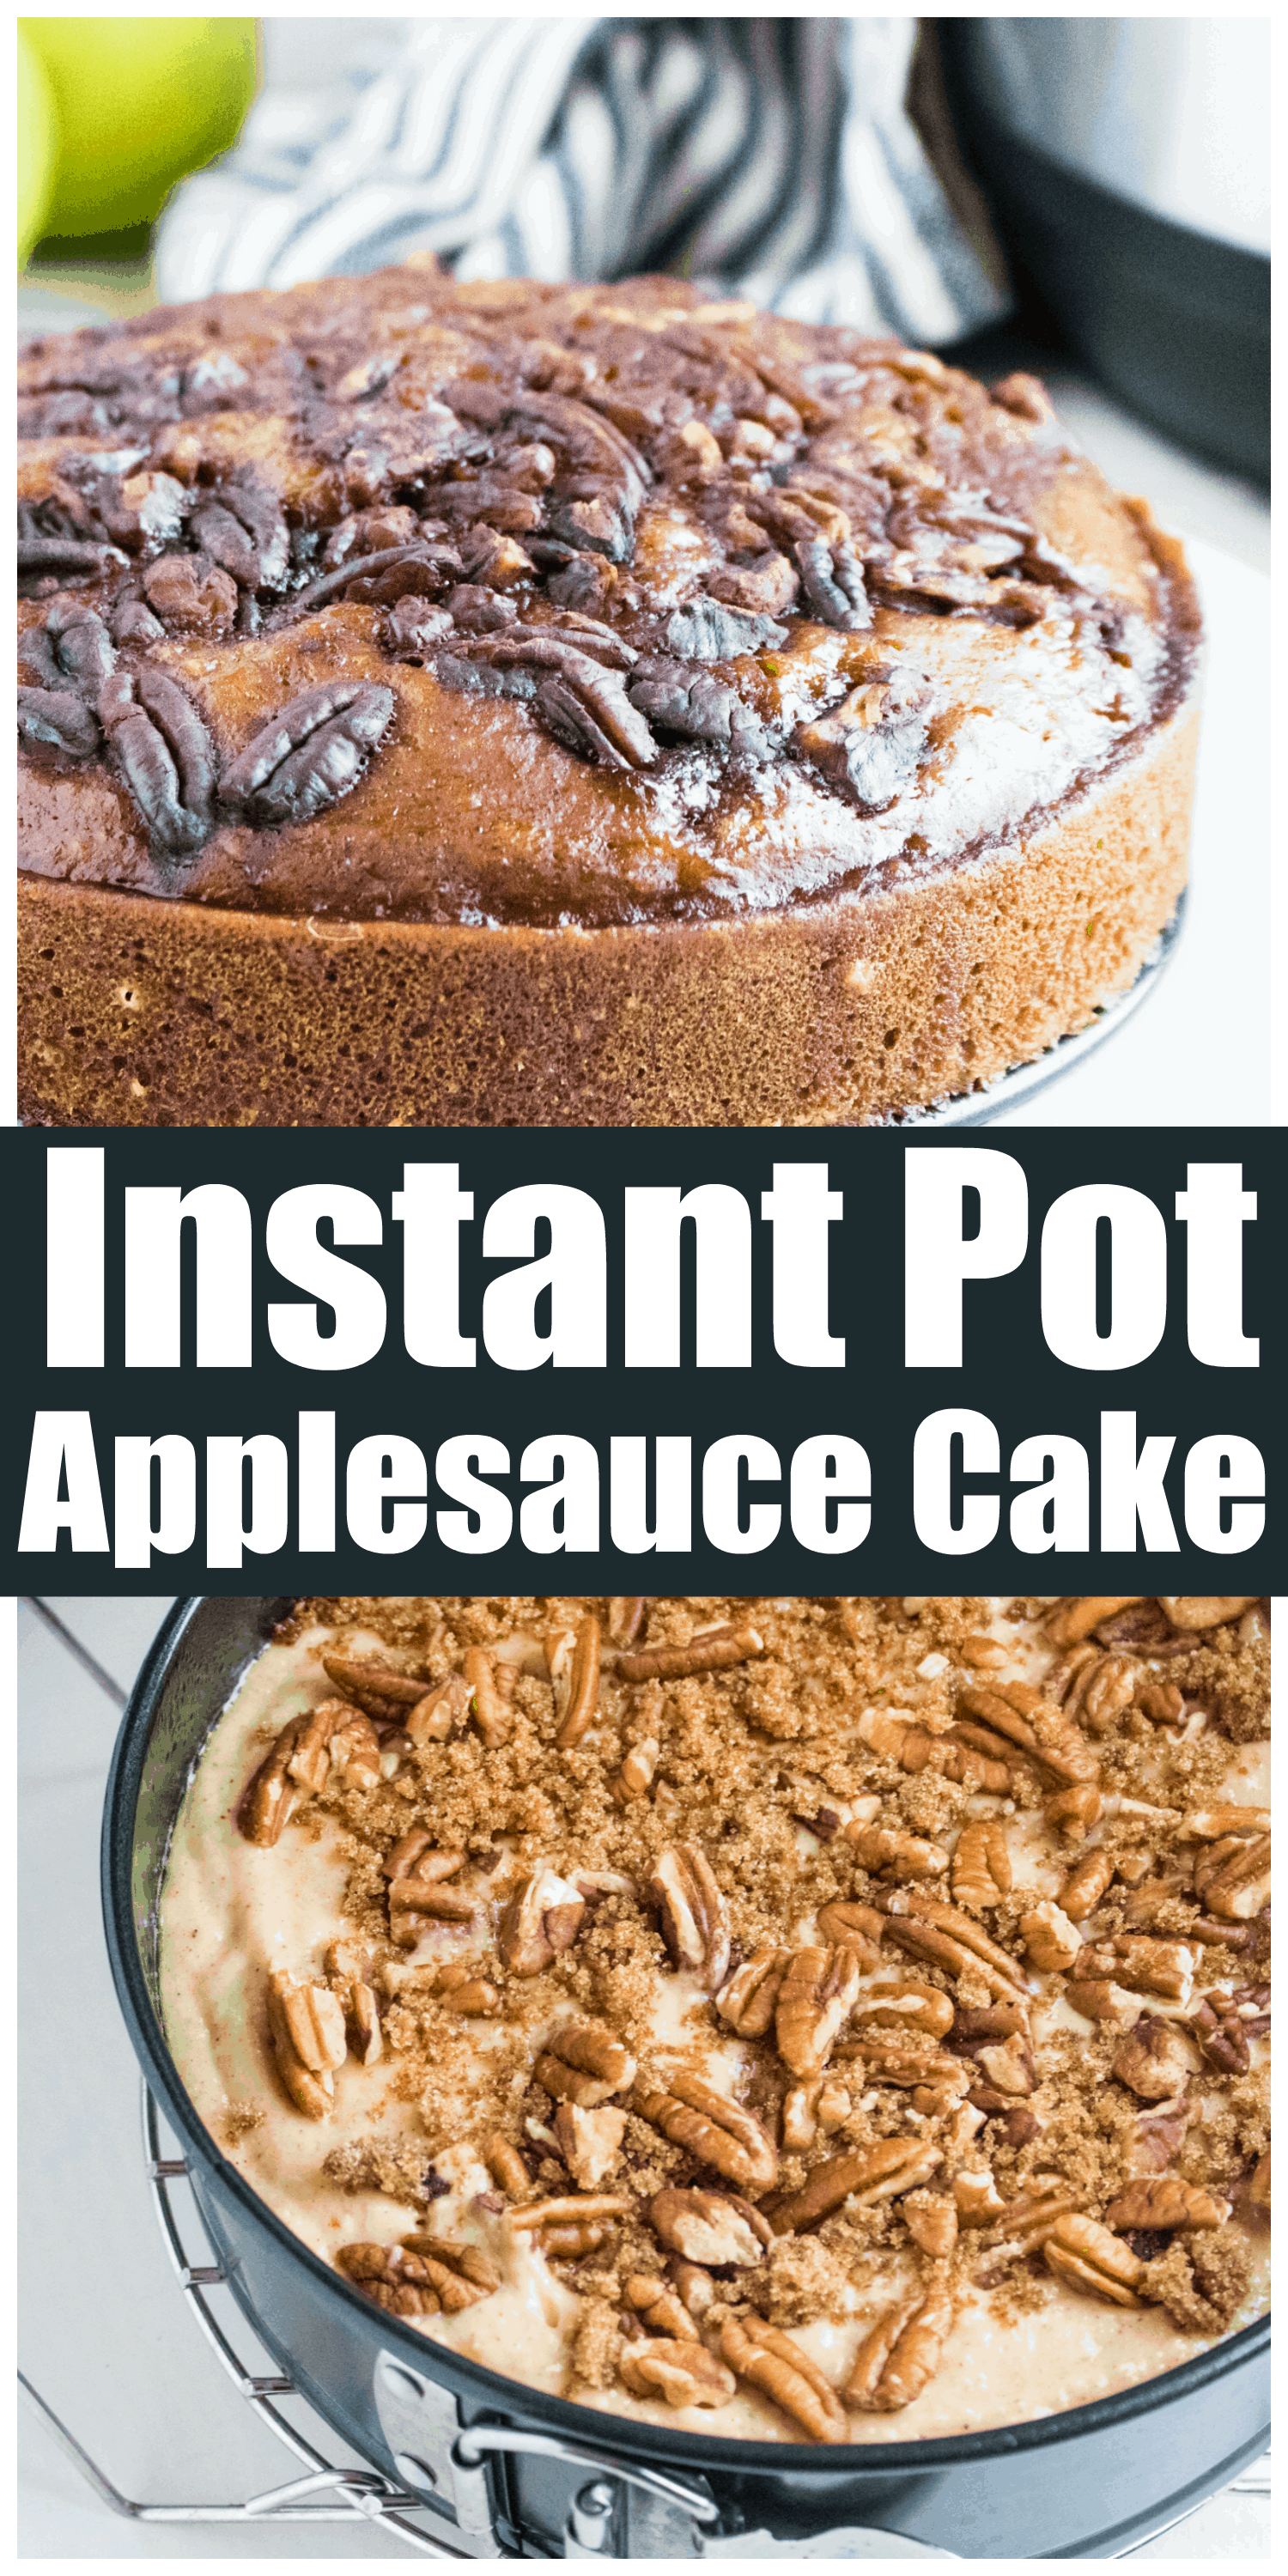 Instant Pot Applesauce Cake